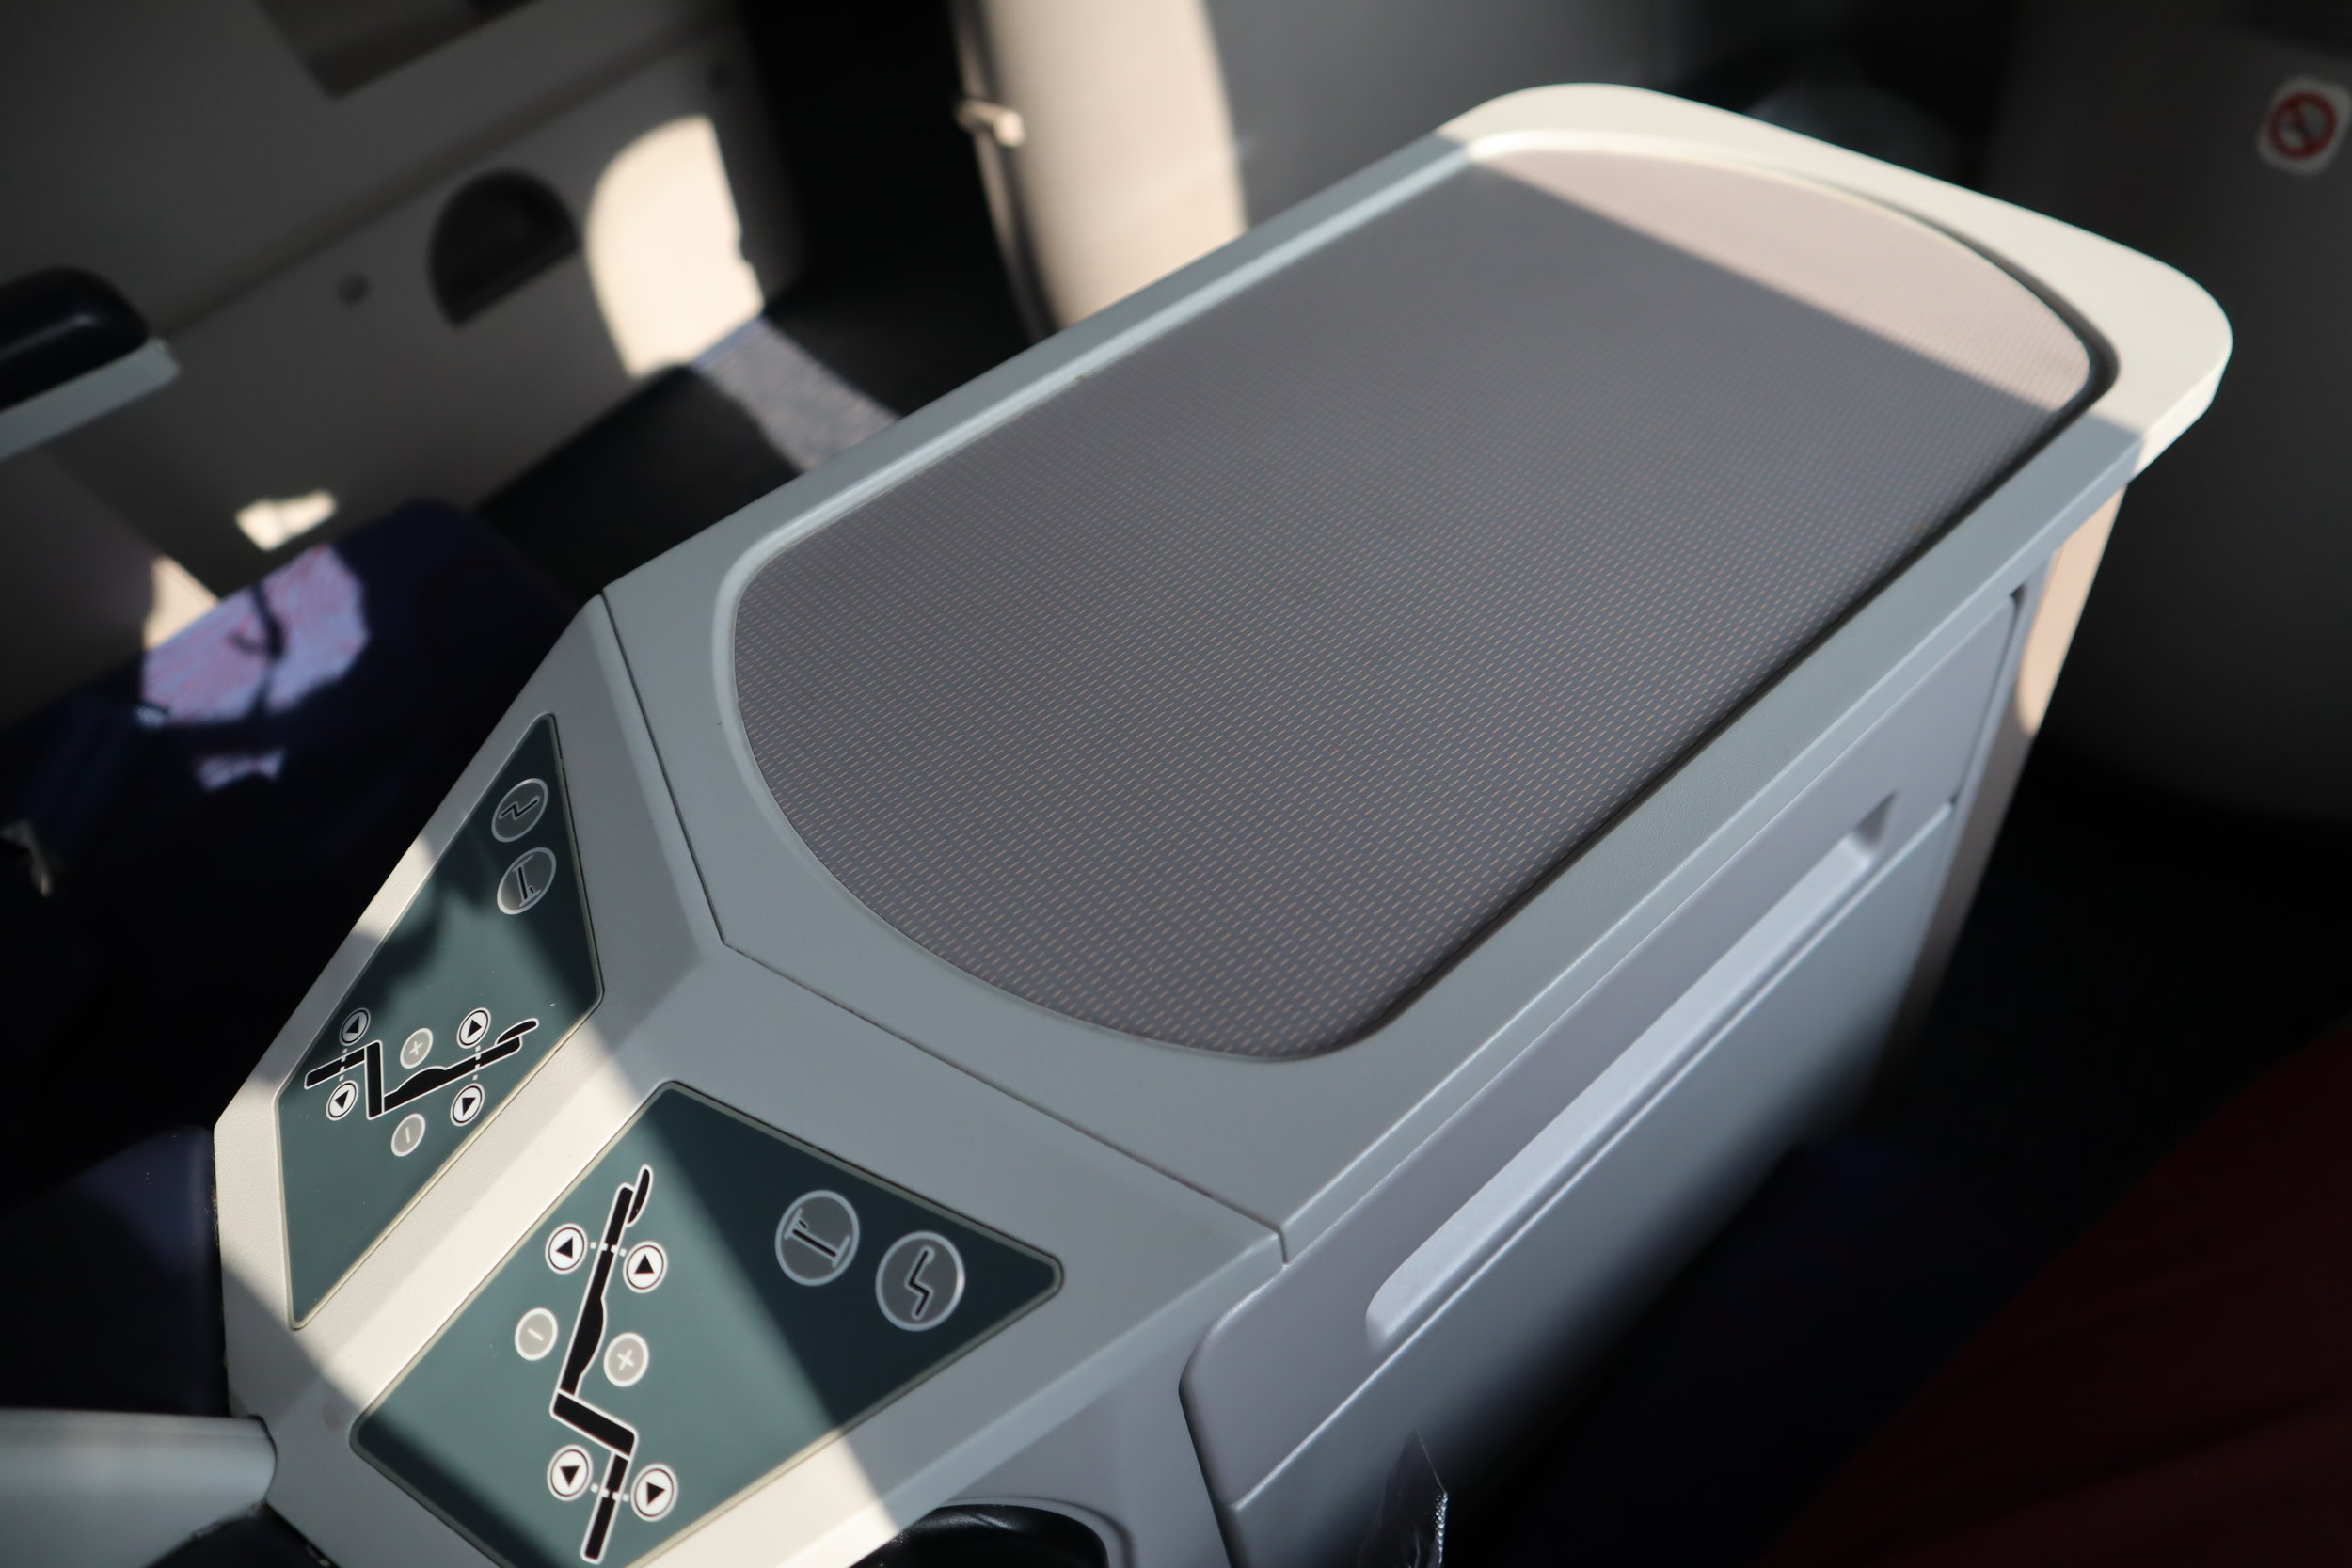 Air China business class – Seat console